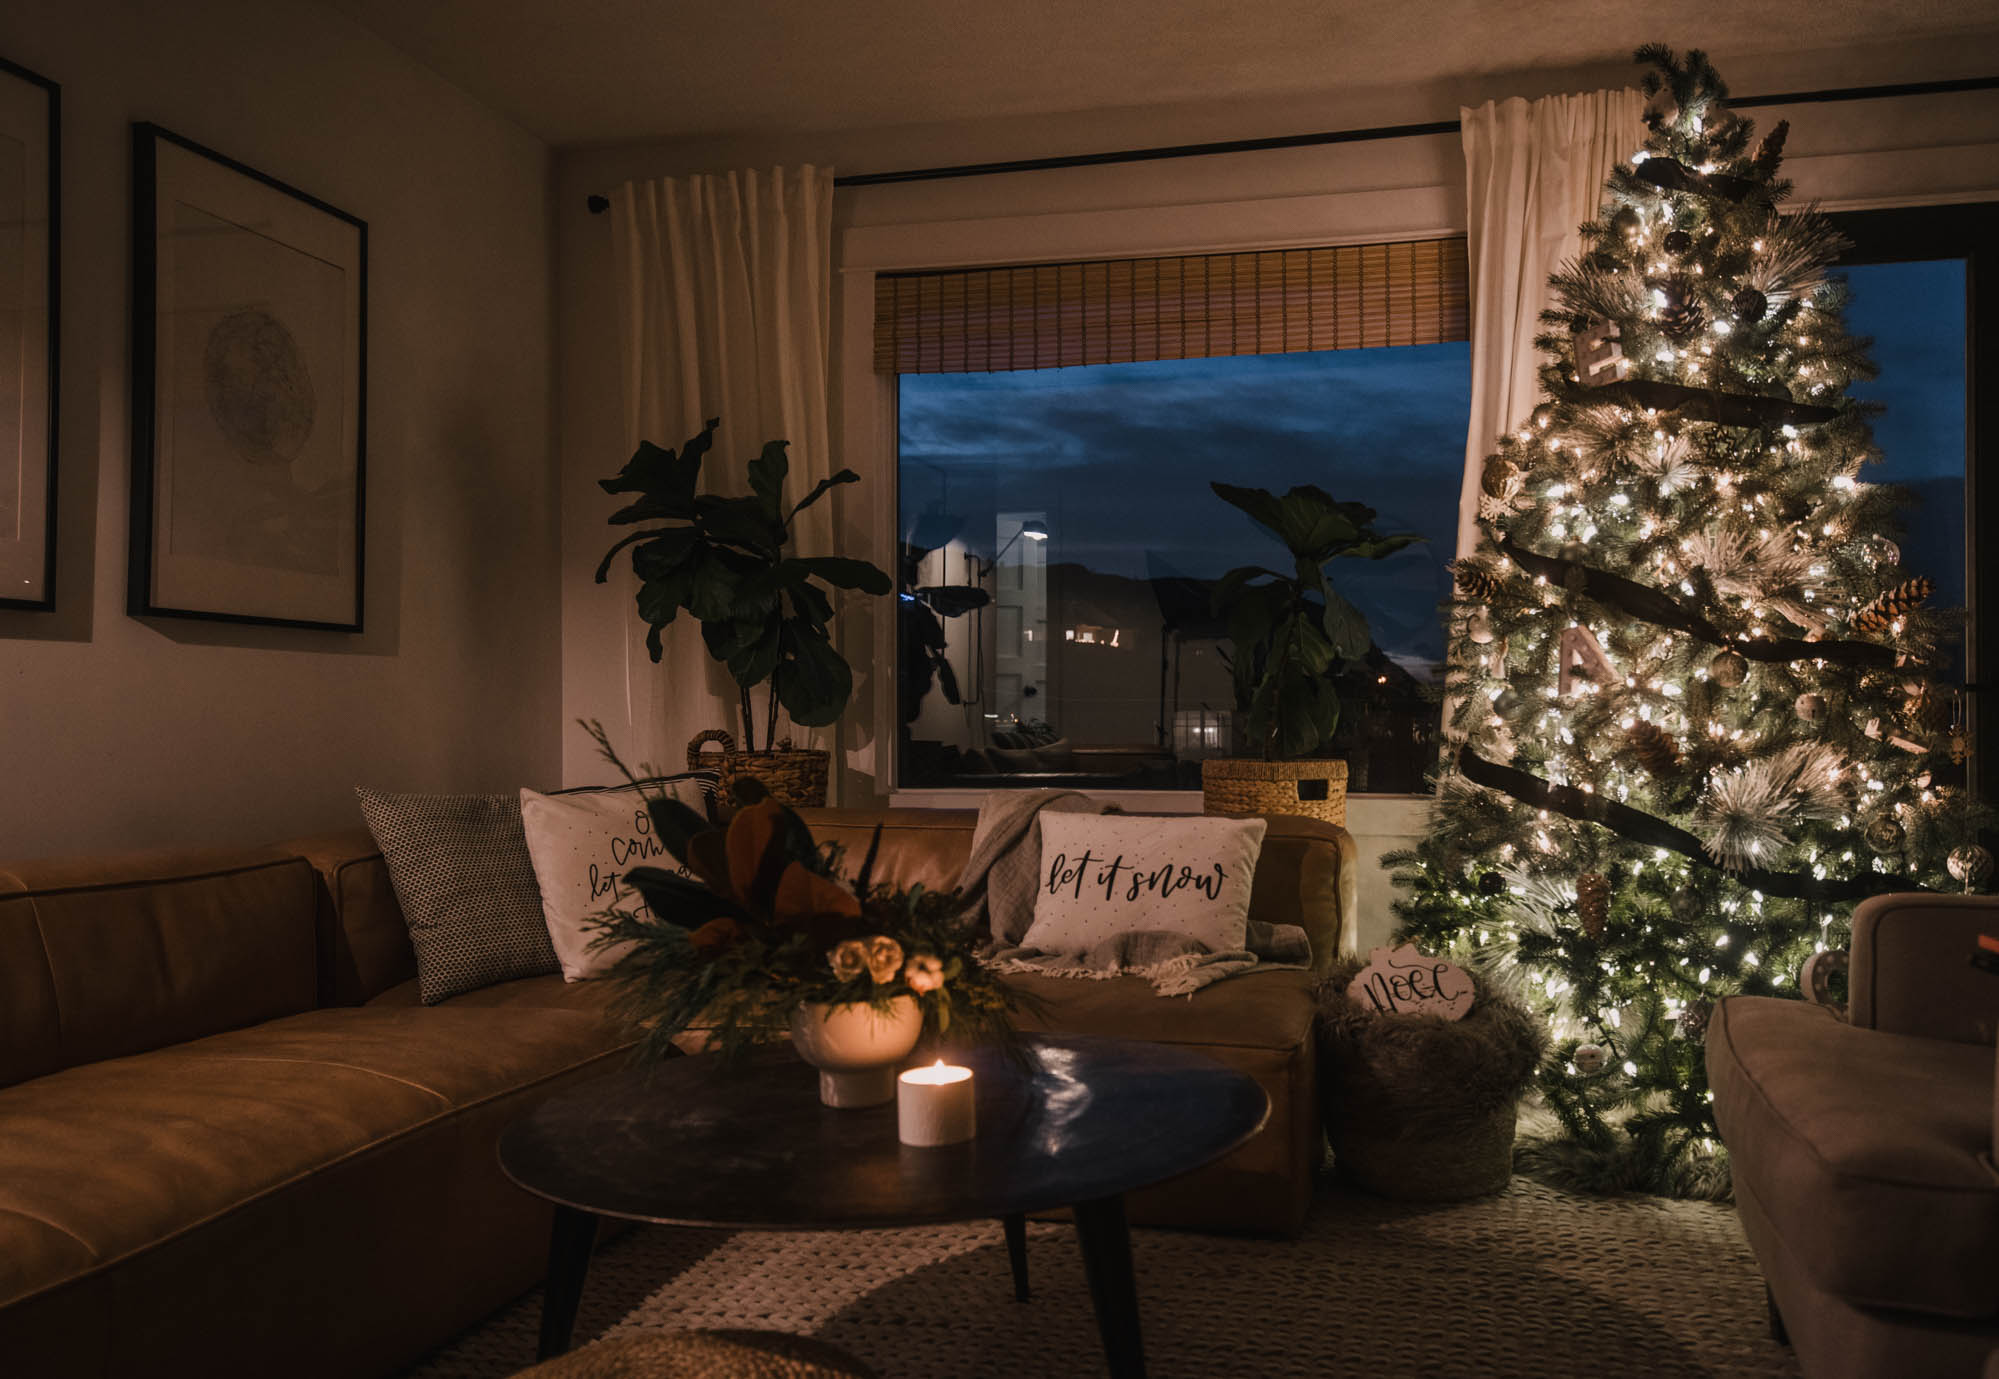 Holiday Home Tour at night